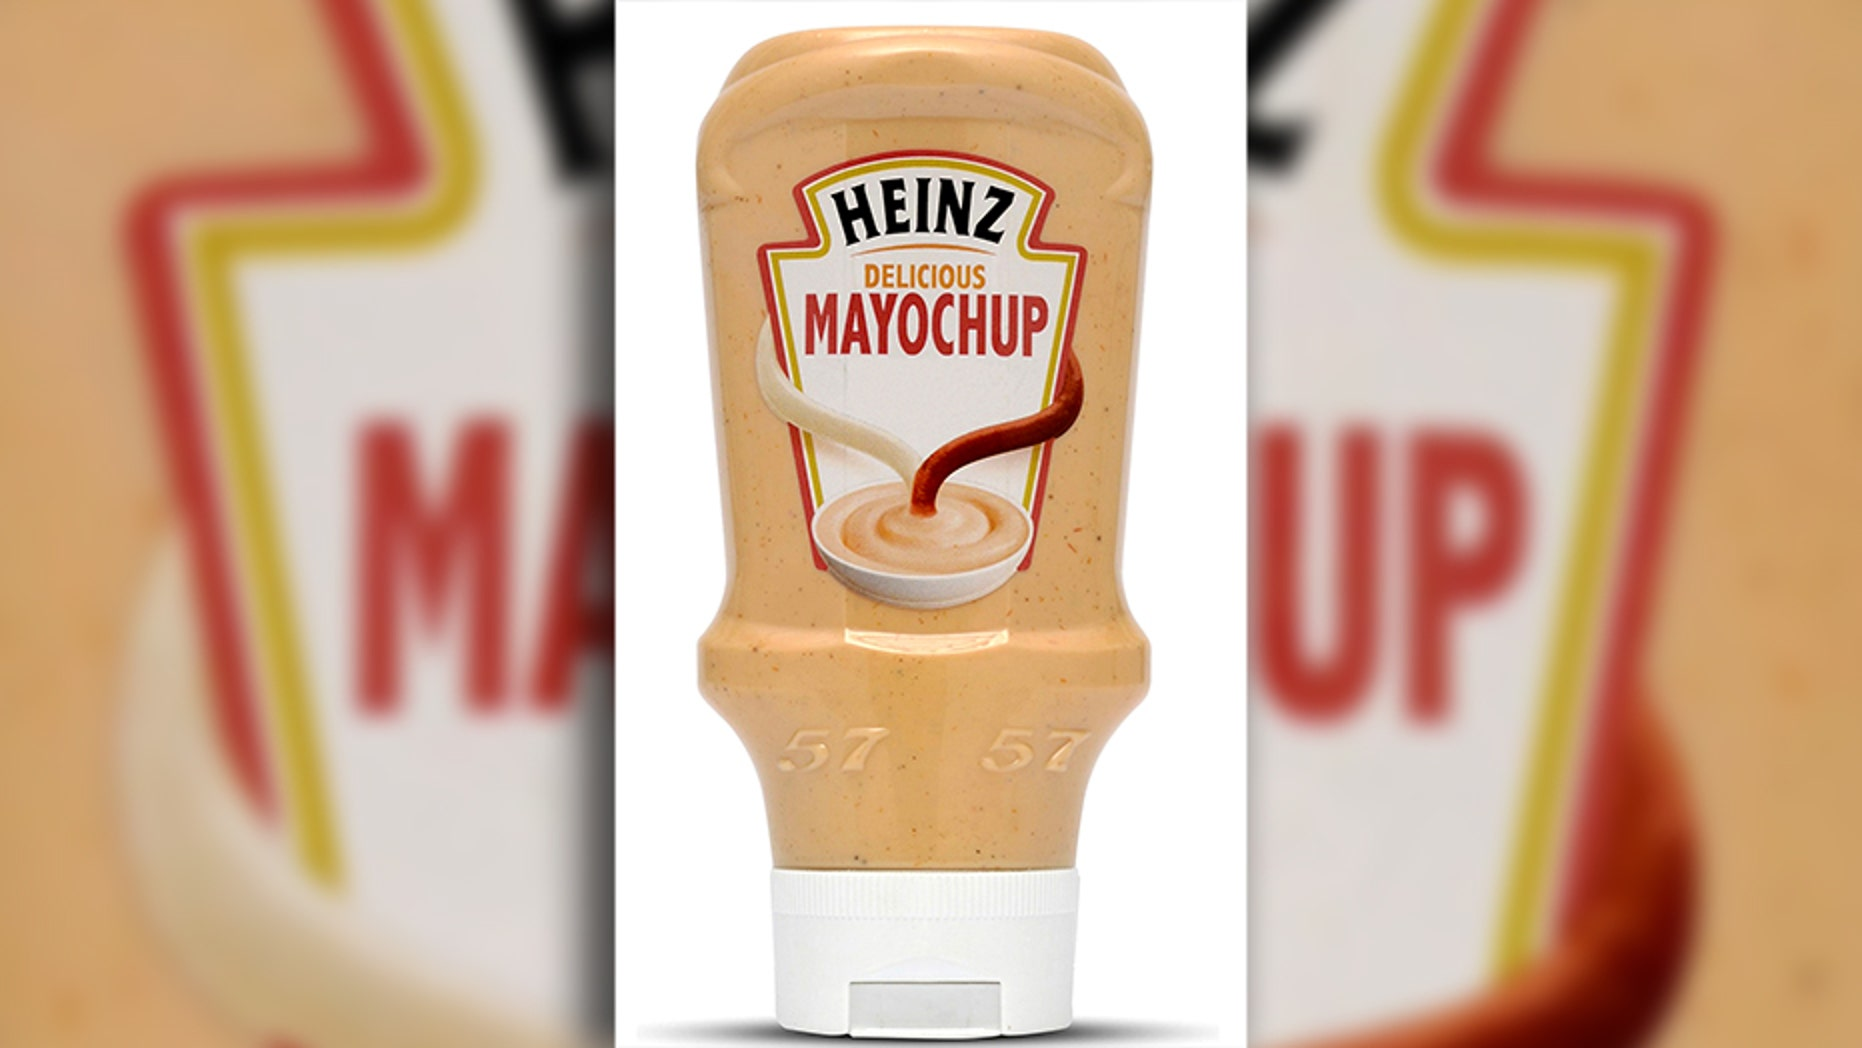 Twitter commentators are both championing and condemning the debut of the mayonnaise and ketchup condiment.